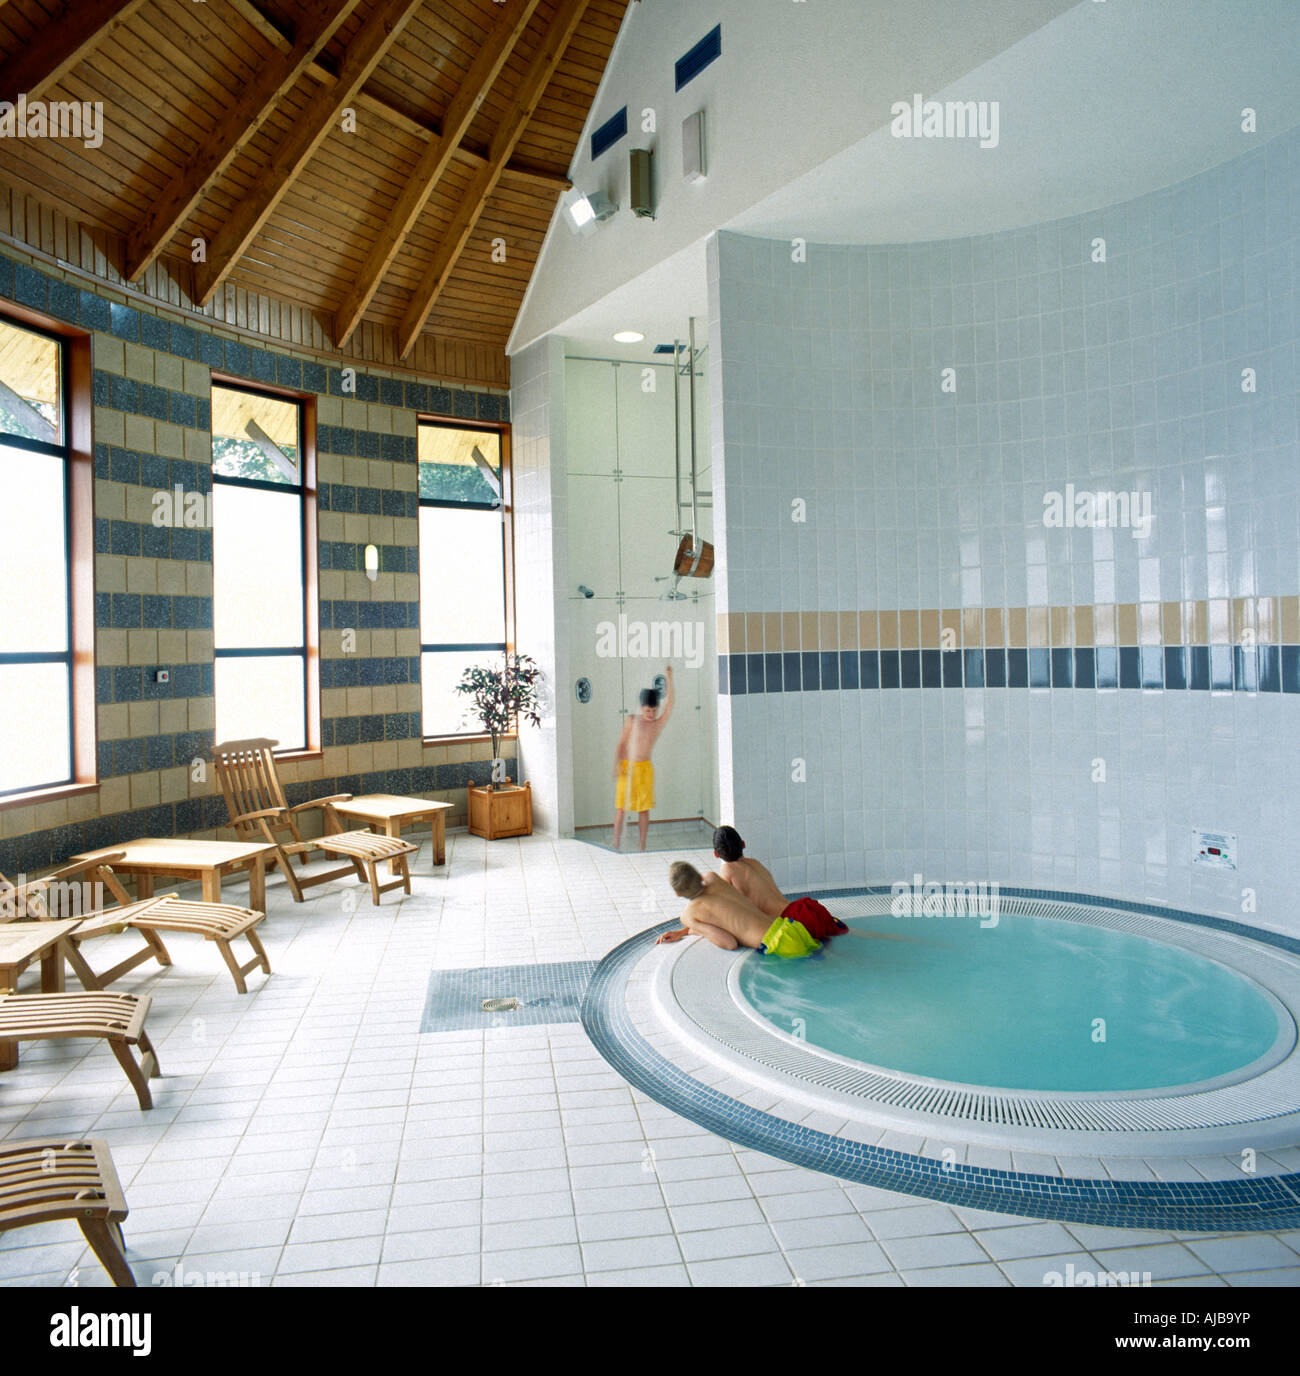 Swimming Pool Showering : Tadley stock photos images alamy